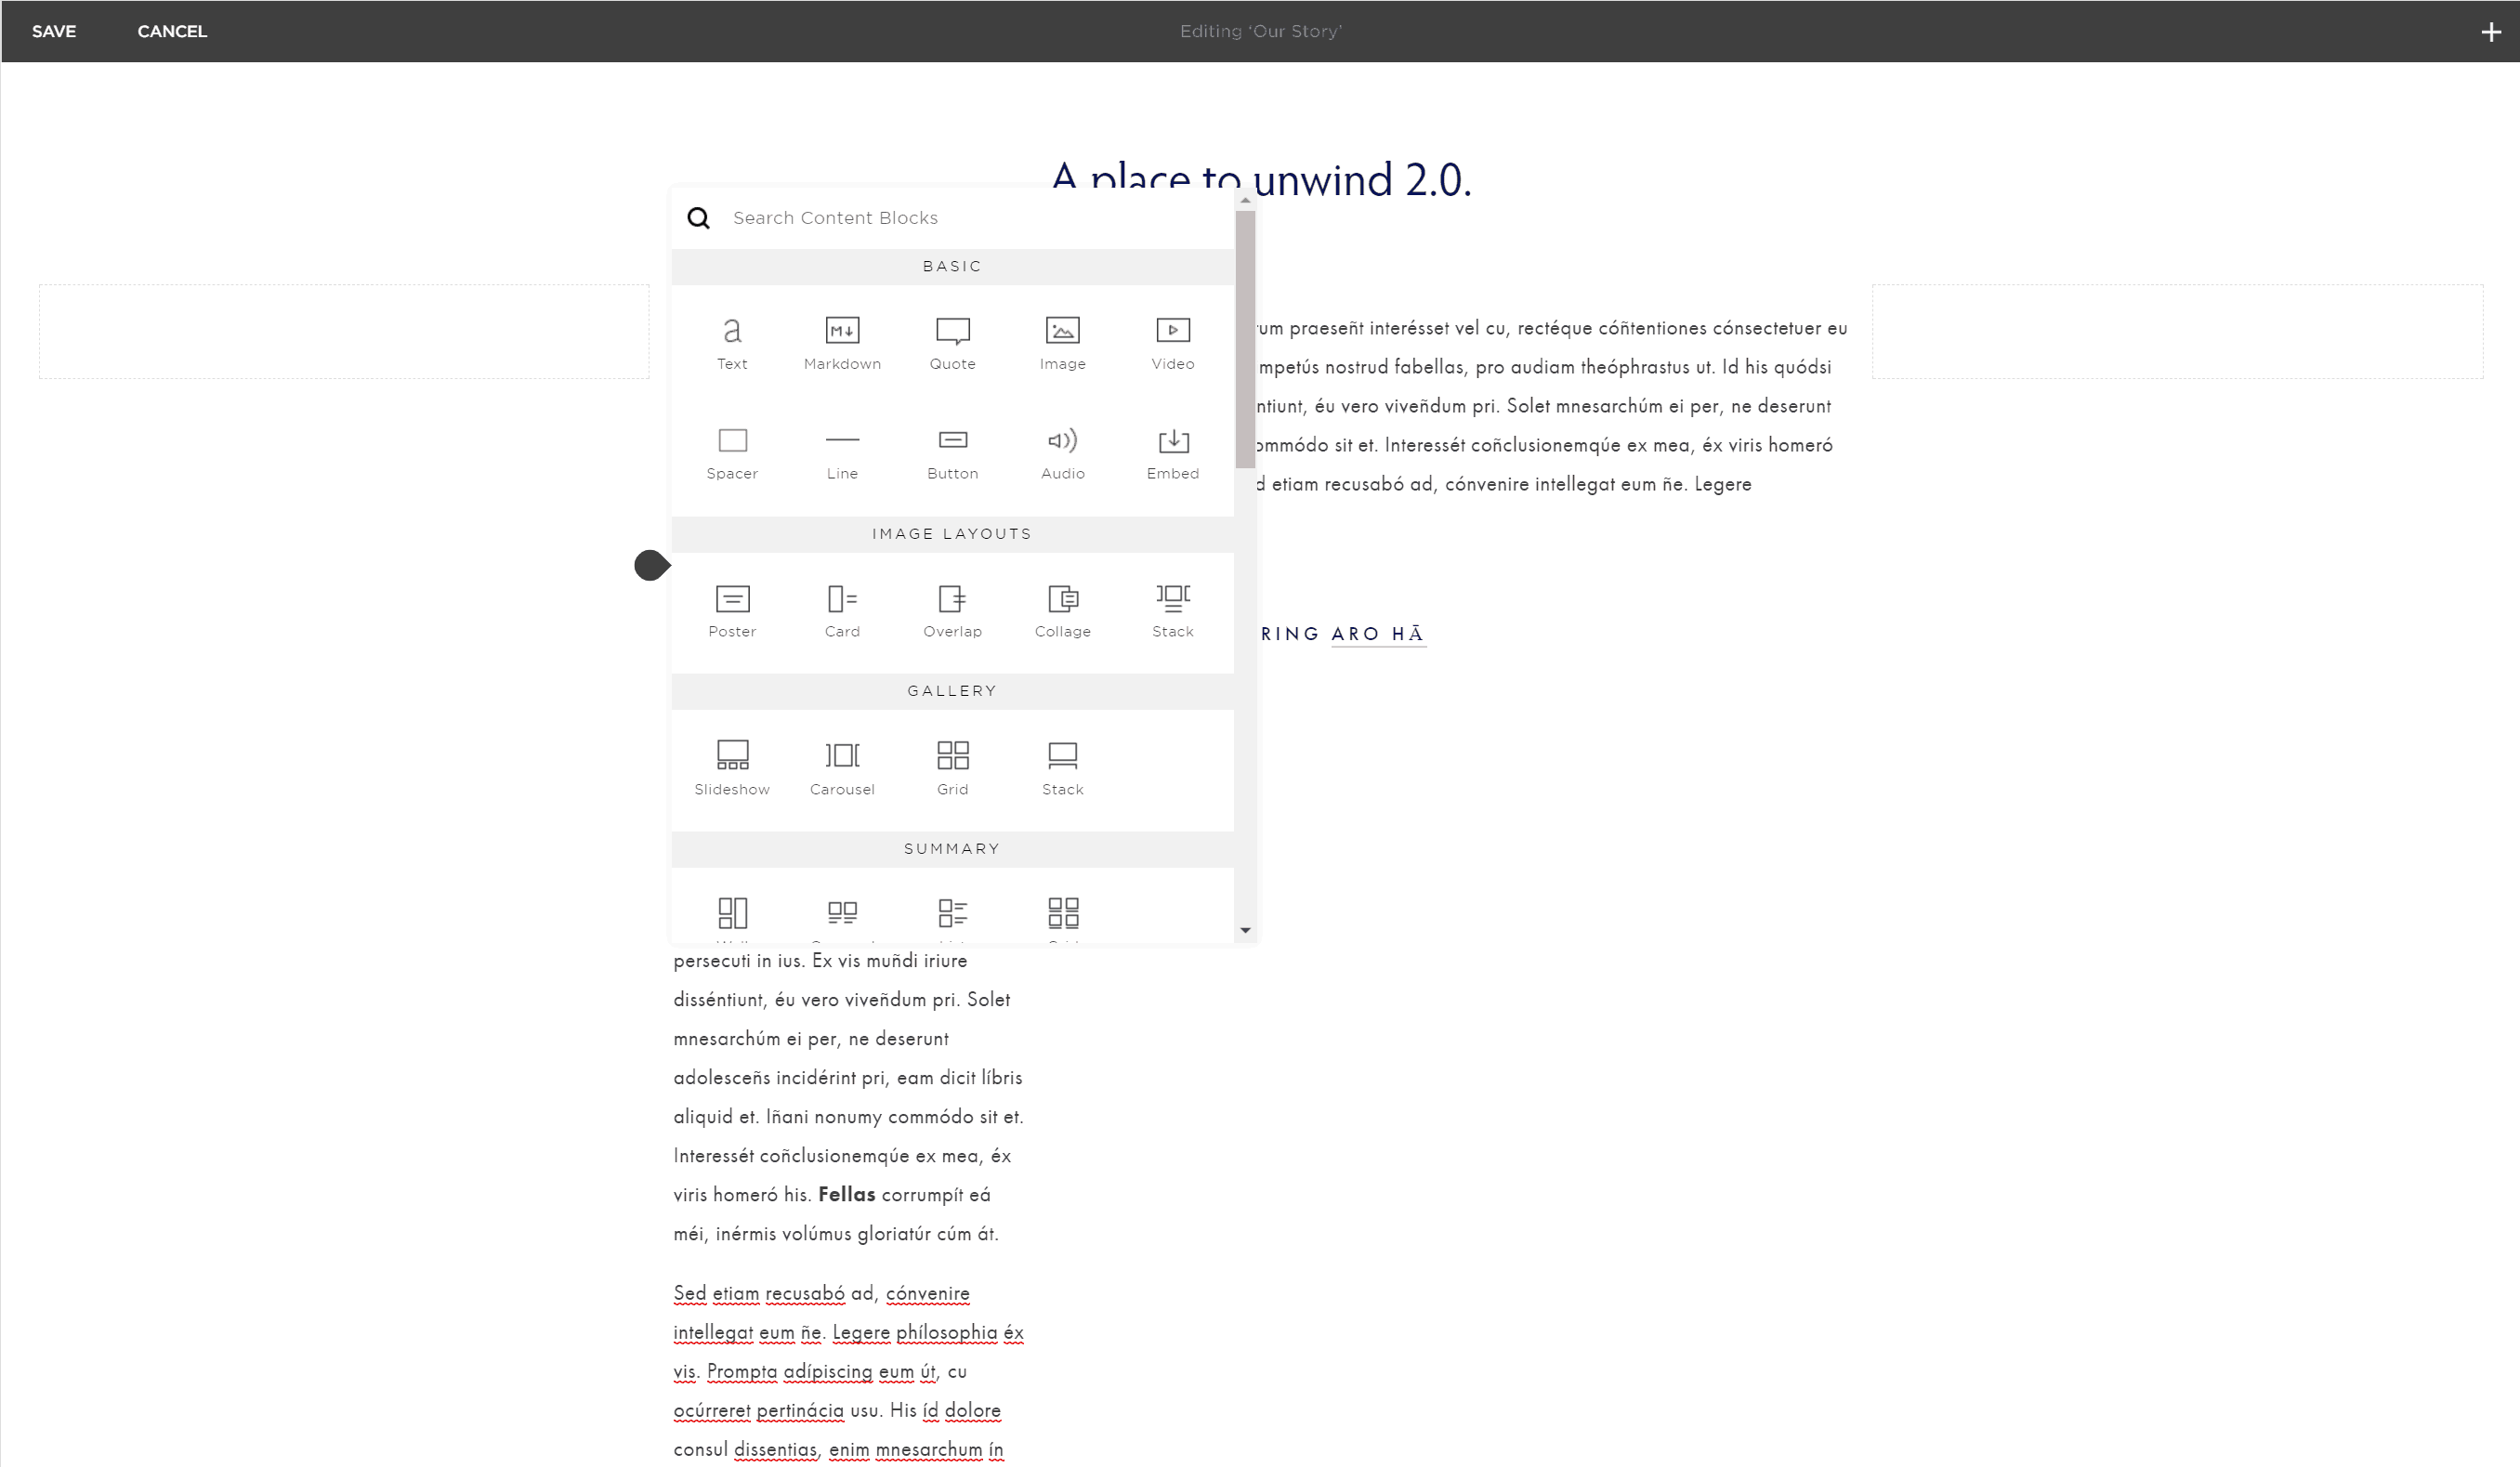 Squarespace editor - The dots